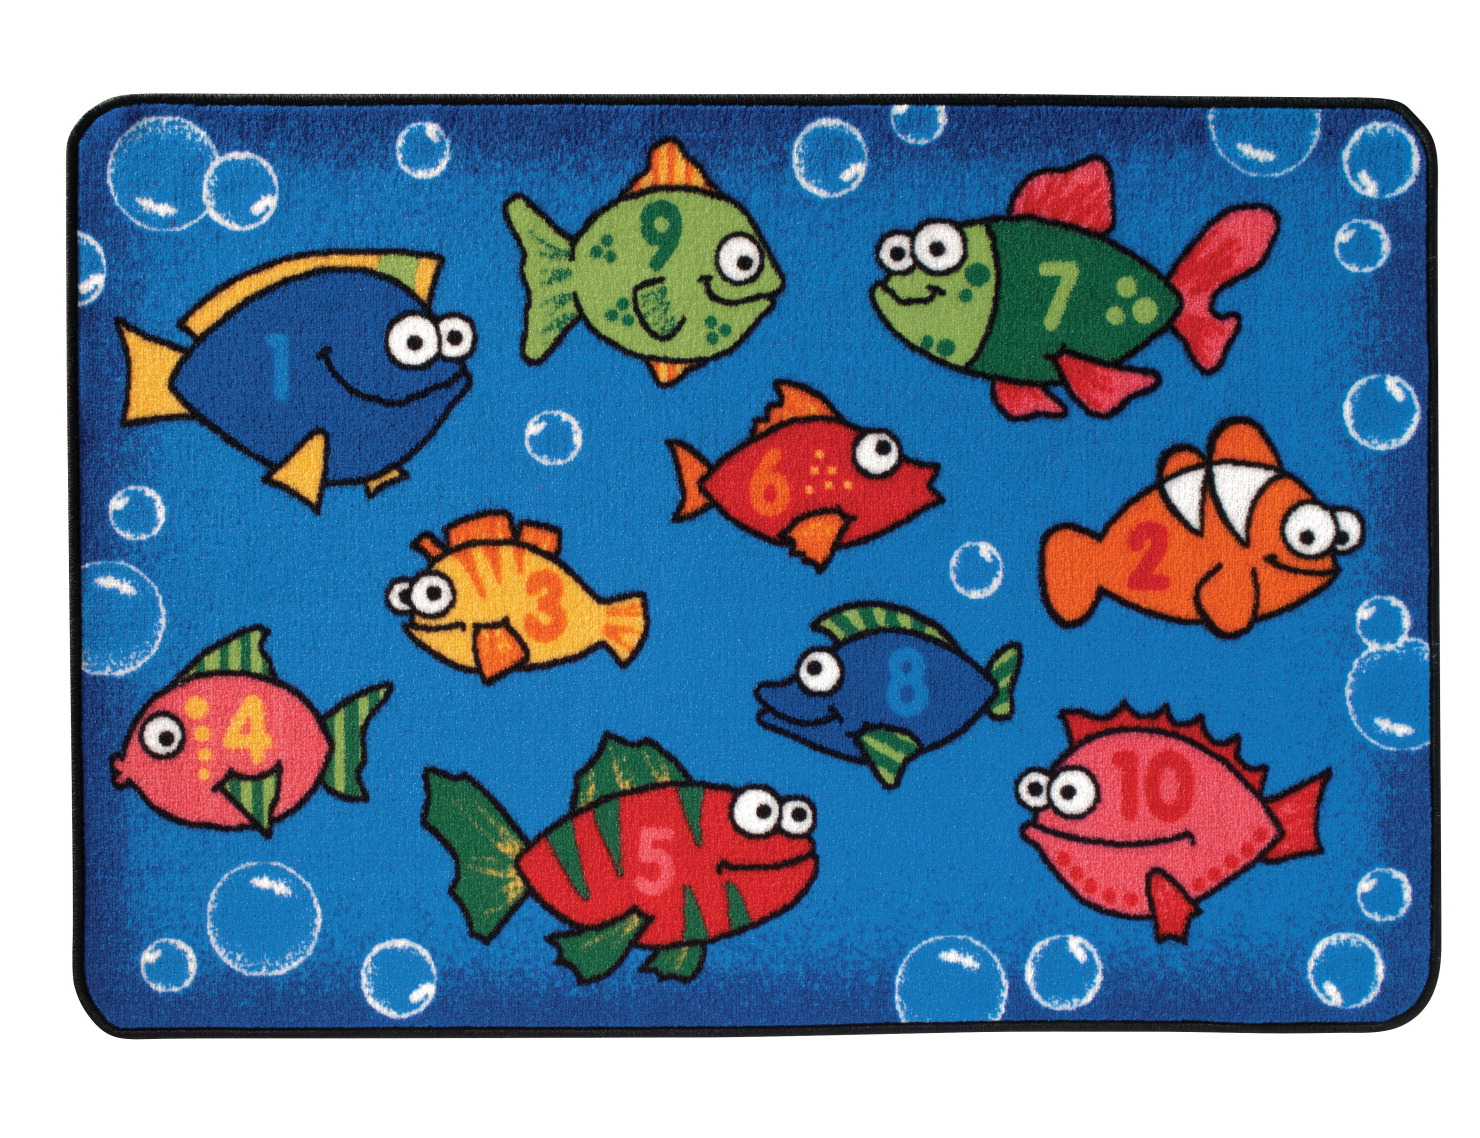 Carpets for Kids Value Line Something Fishy Rug, 3 ft x 4 ft 6 in Rectangle